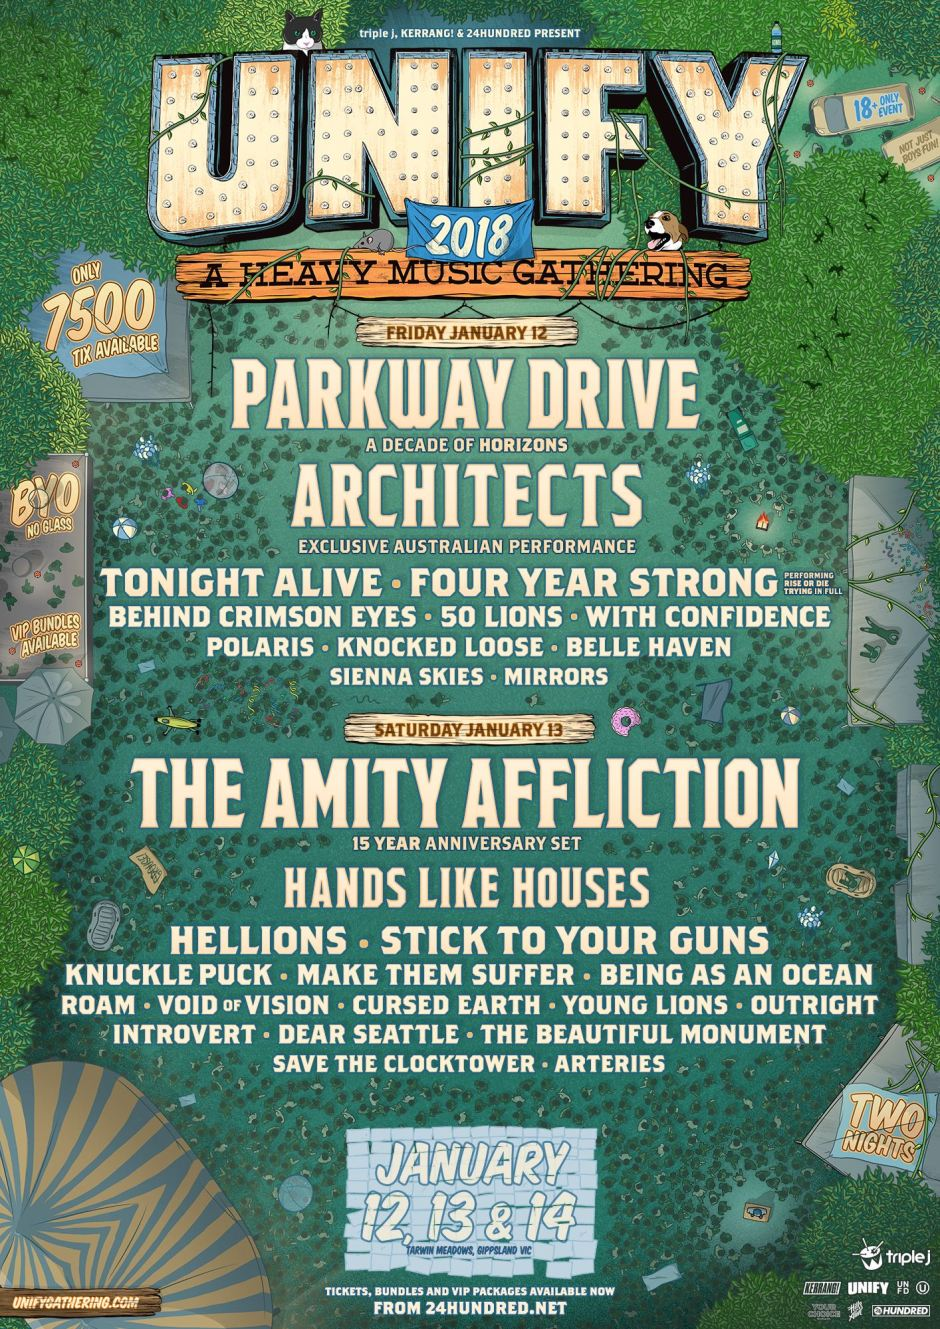 UNIFY 2018 A Heavy Music Gathering Parkway Drive The Amity Affliction